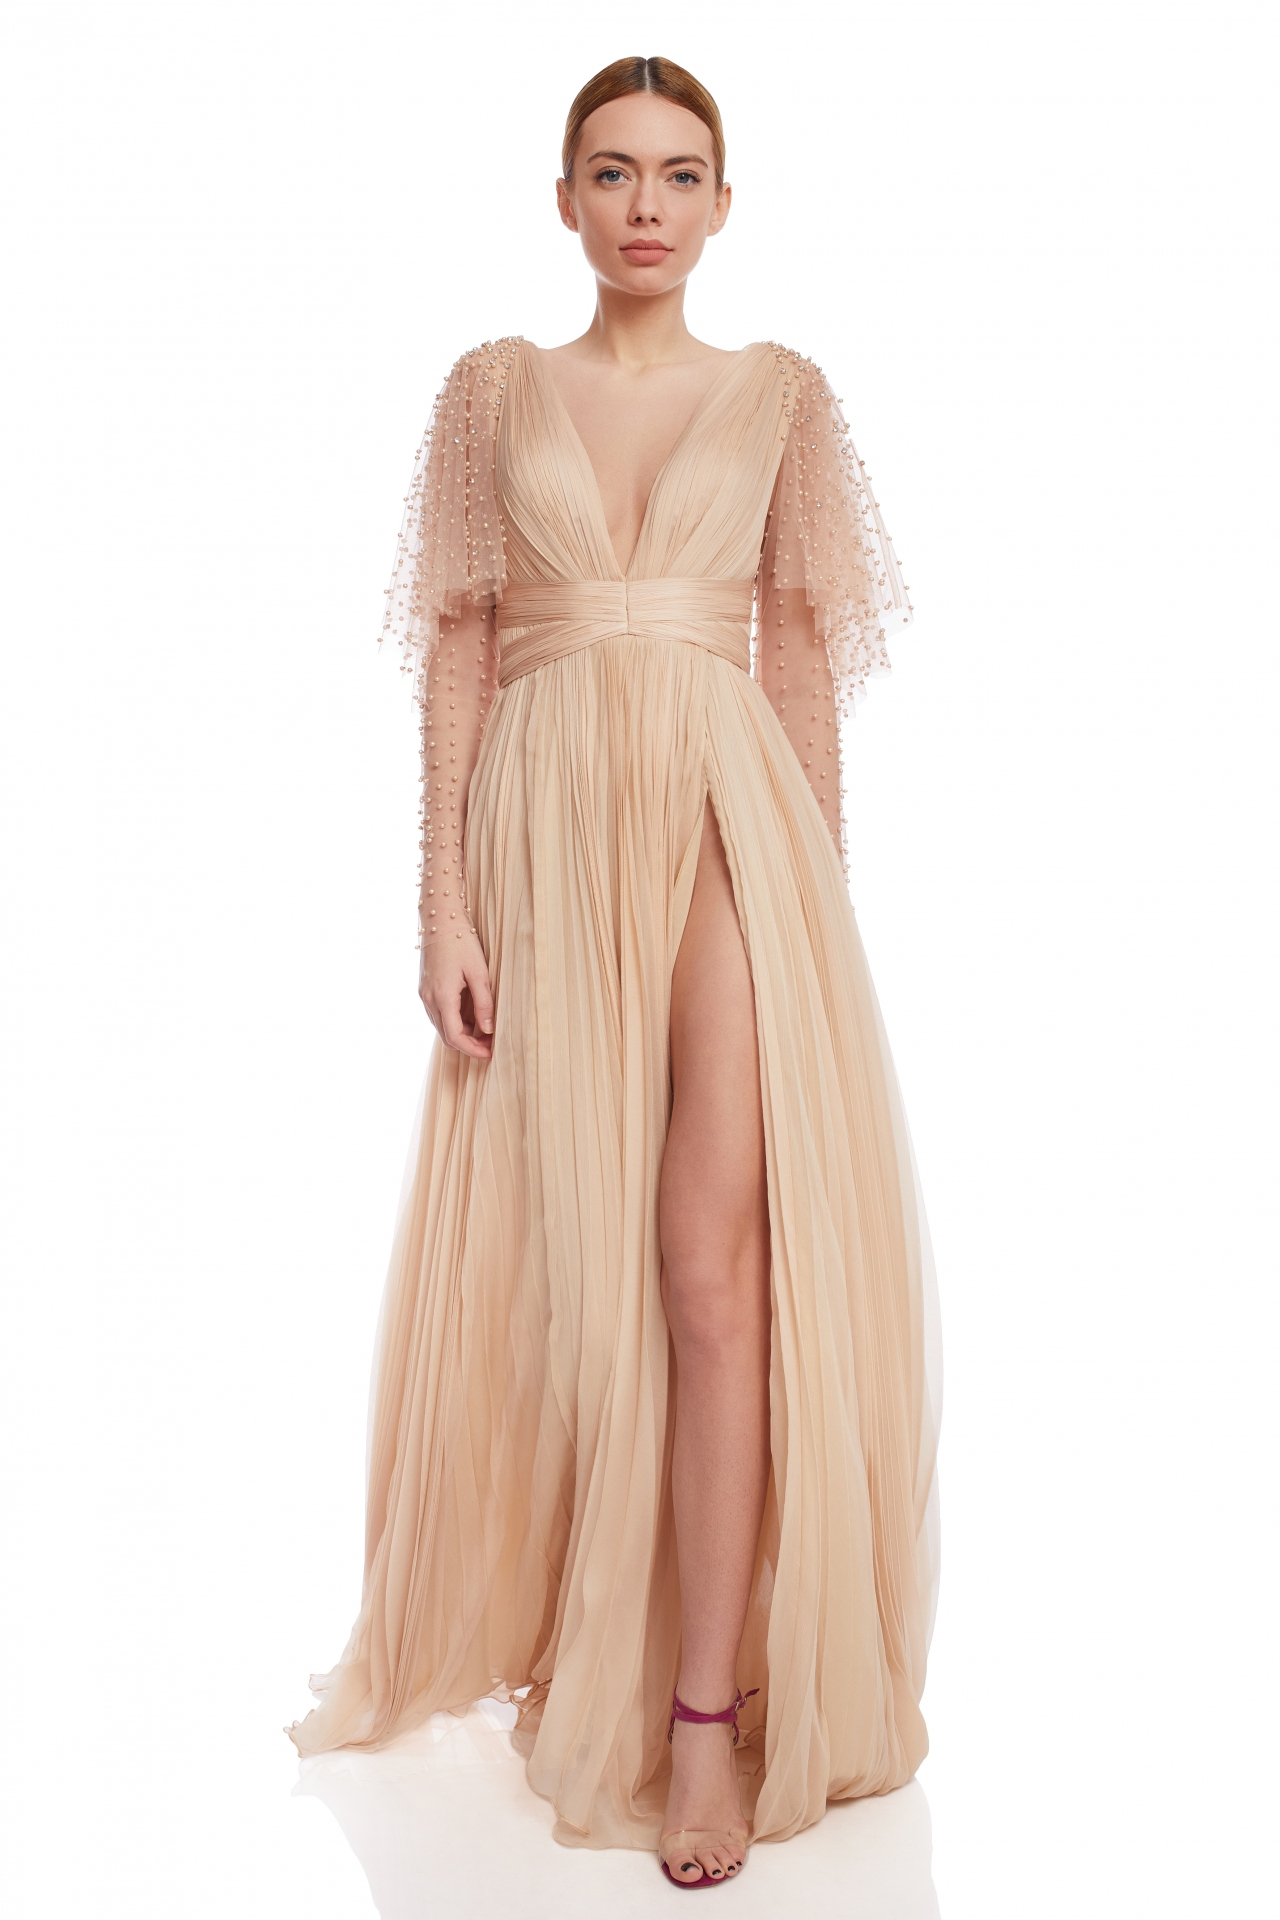 Silk gown with pearled sleeves